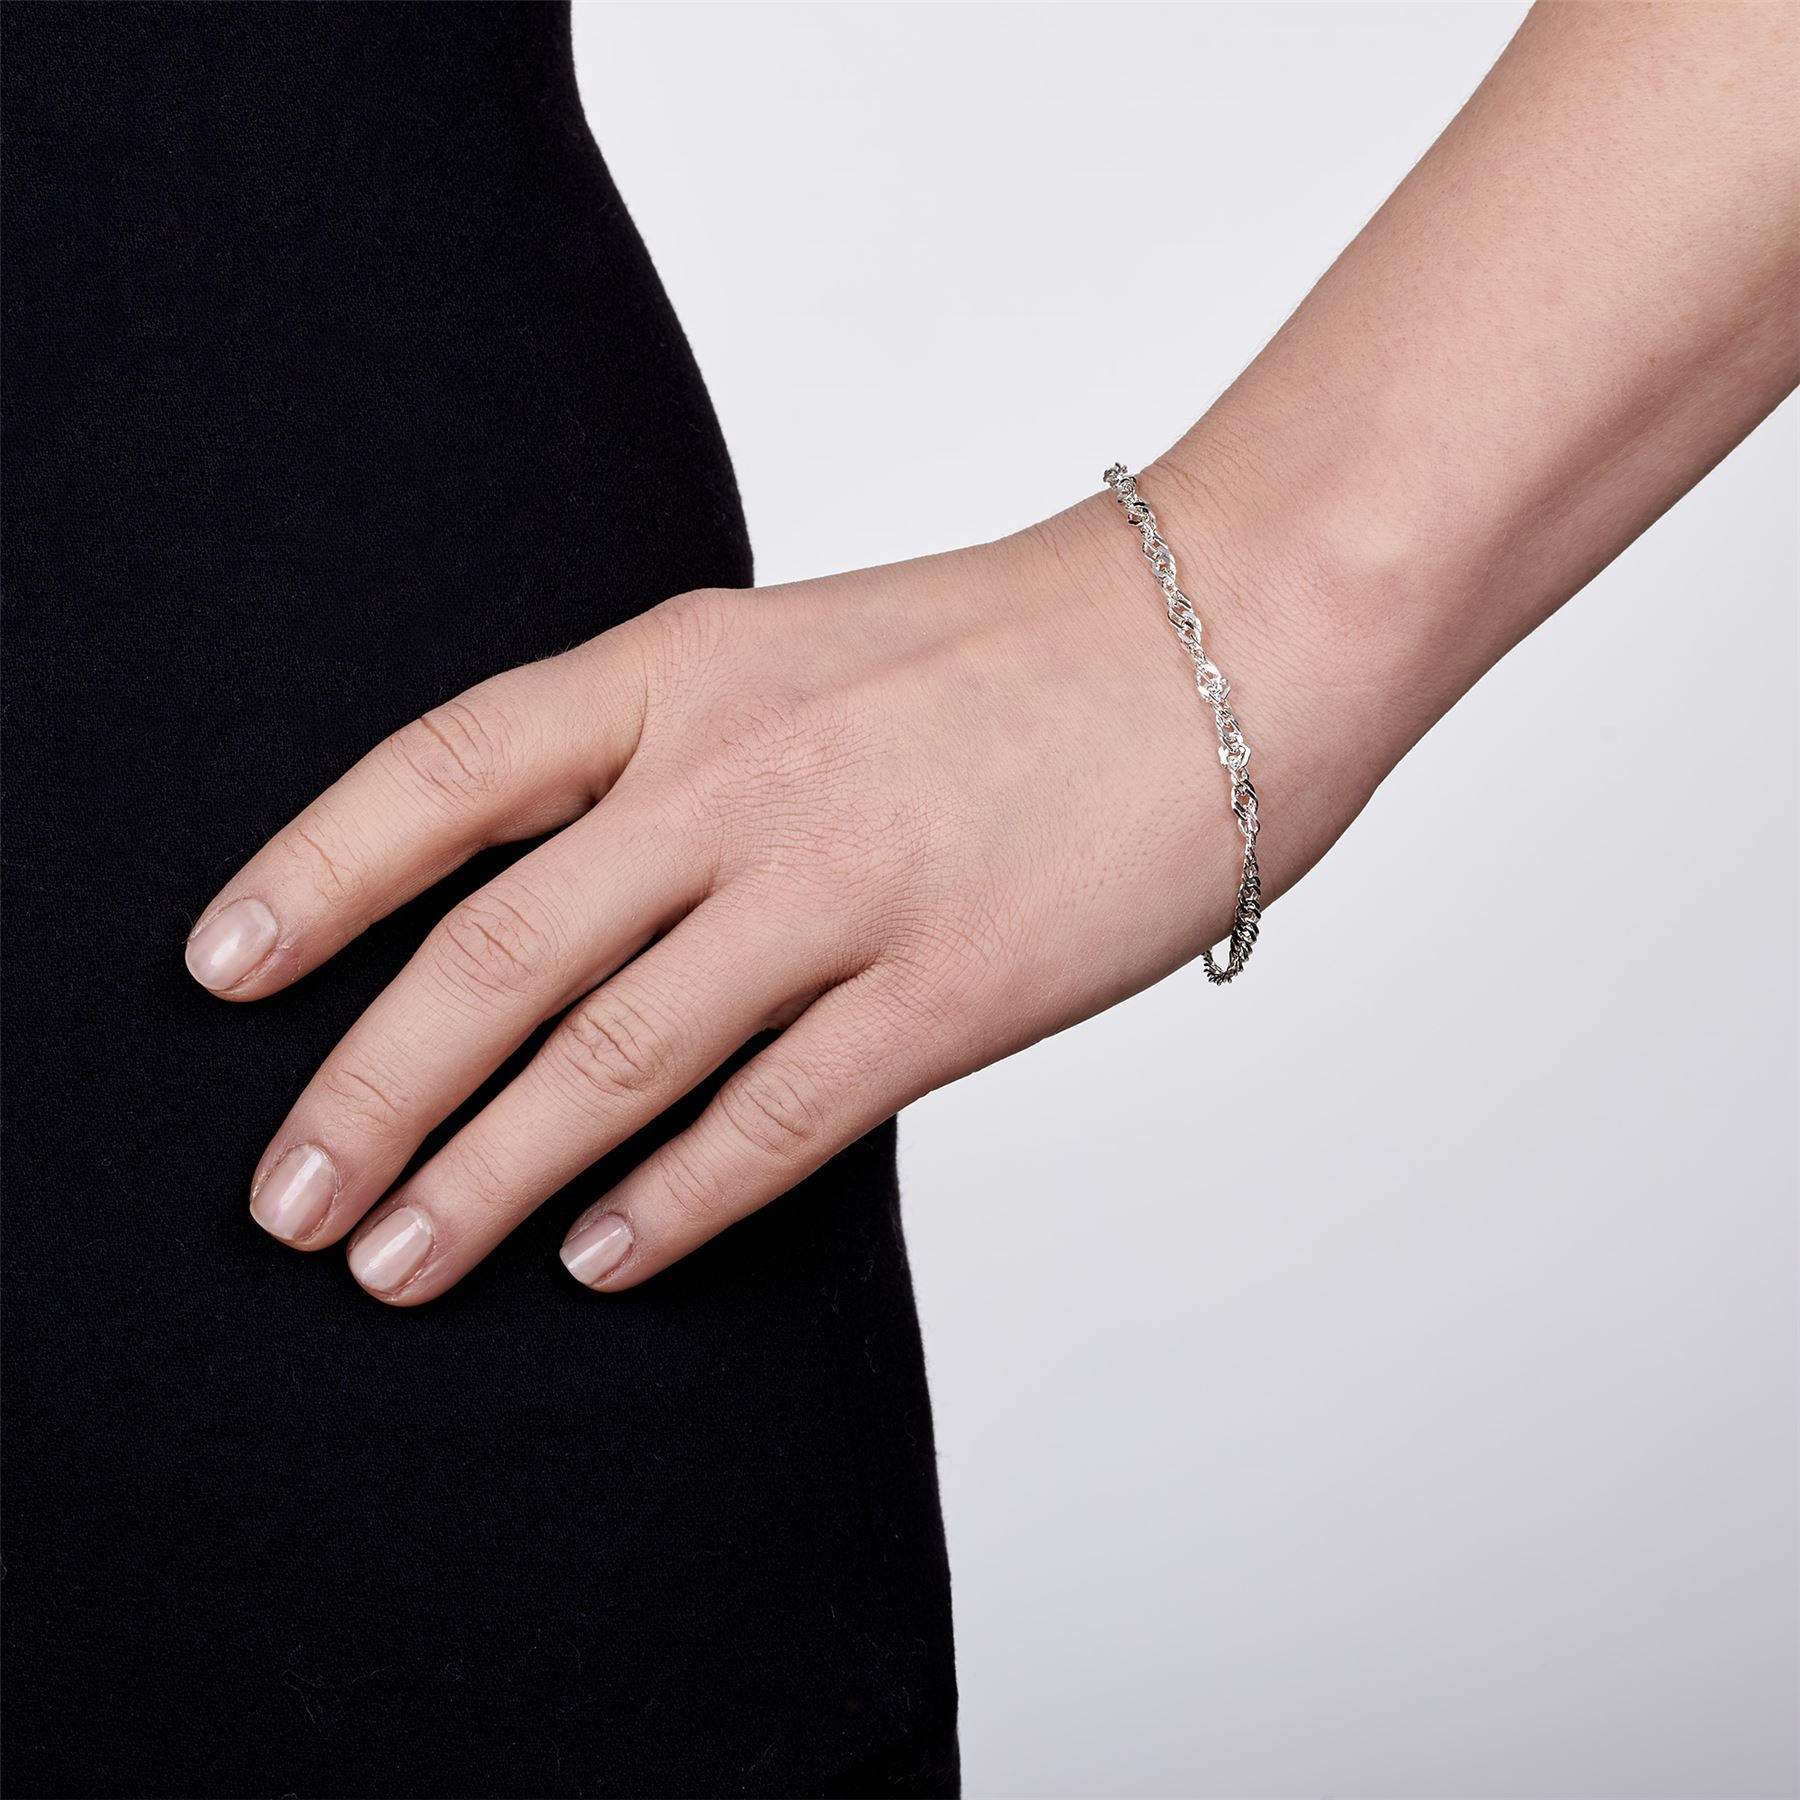 Amberta-Jewelry-Genuine-925-Sterling-Silver-Bracelet-Bangle-Chain-Made-in-Italy thumbnail 90